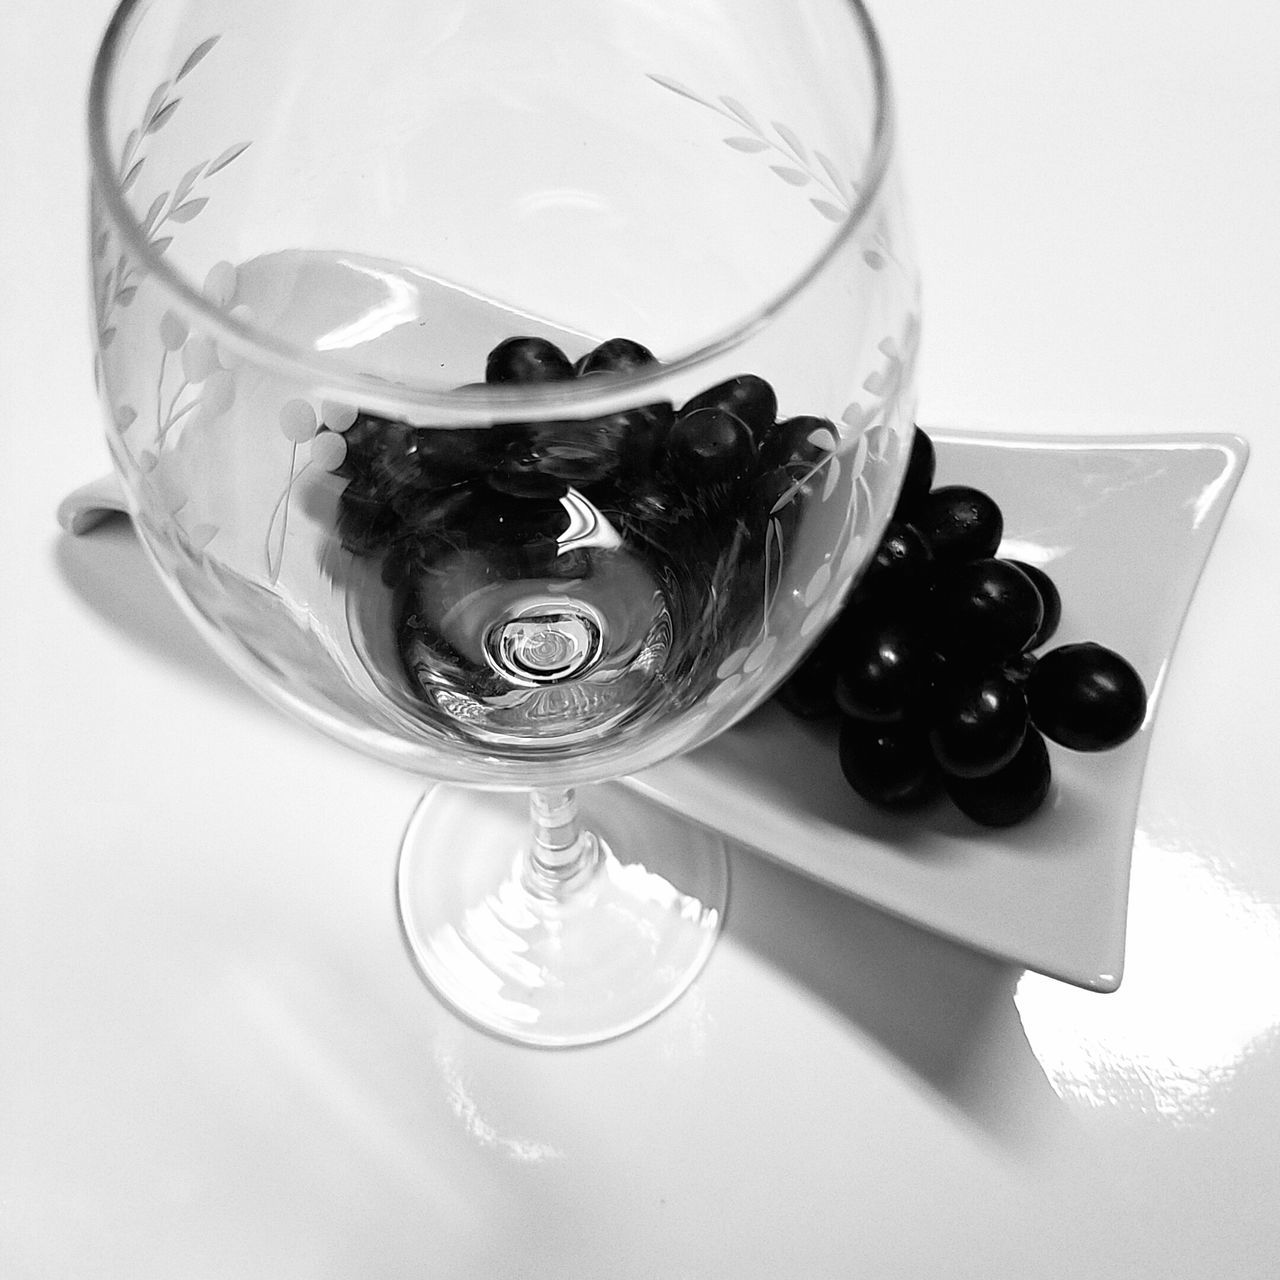 B&W Cup and Grapes Close-up Day Drink Drinking Glass Food Grapes High Angle View Indoors  MUR B&W No People Still Life Table White Background Wine Wine Moments Wineglass